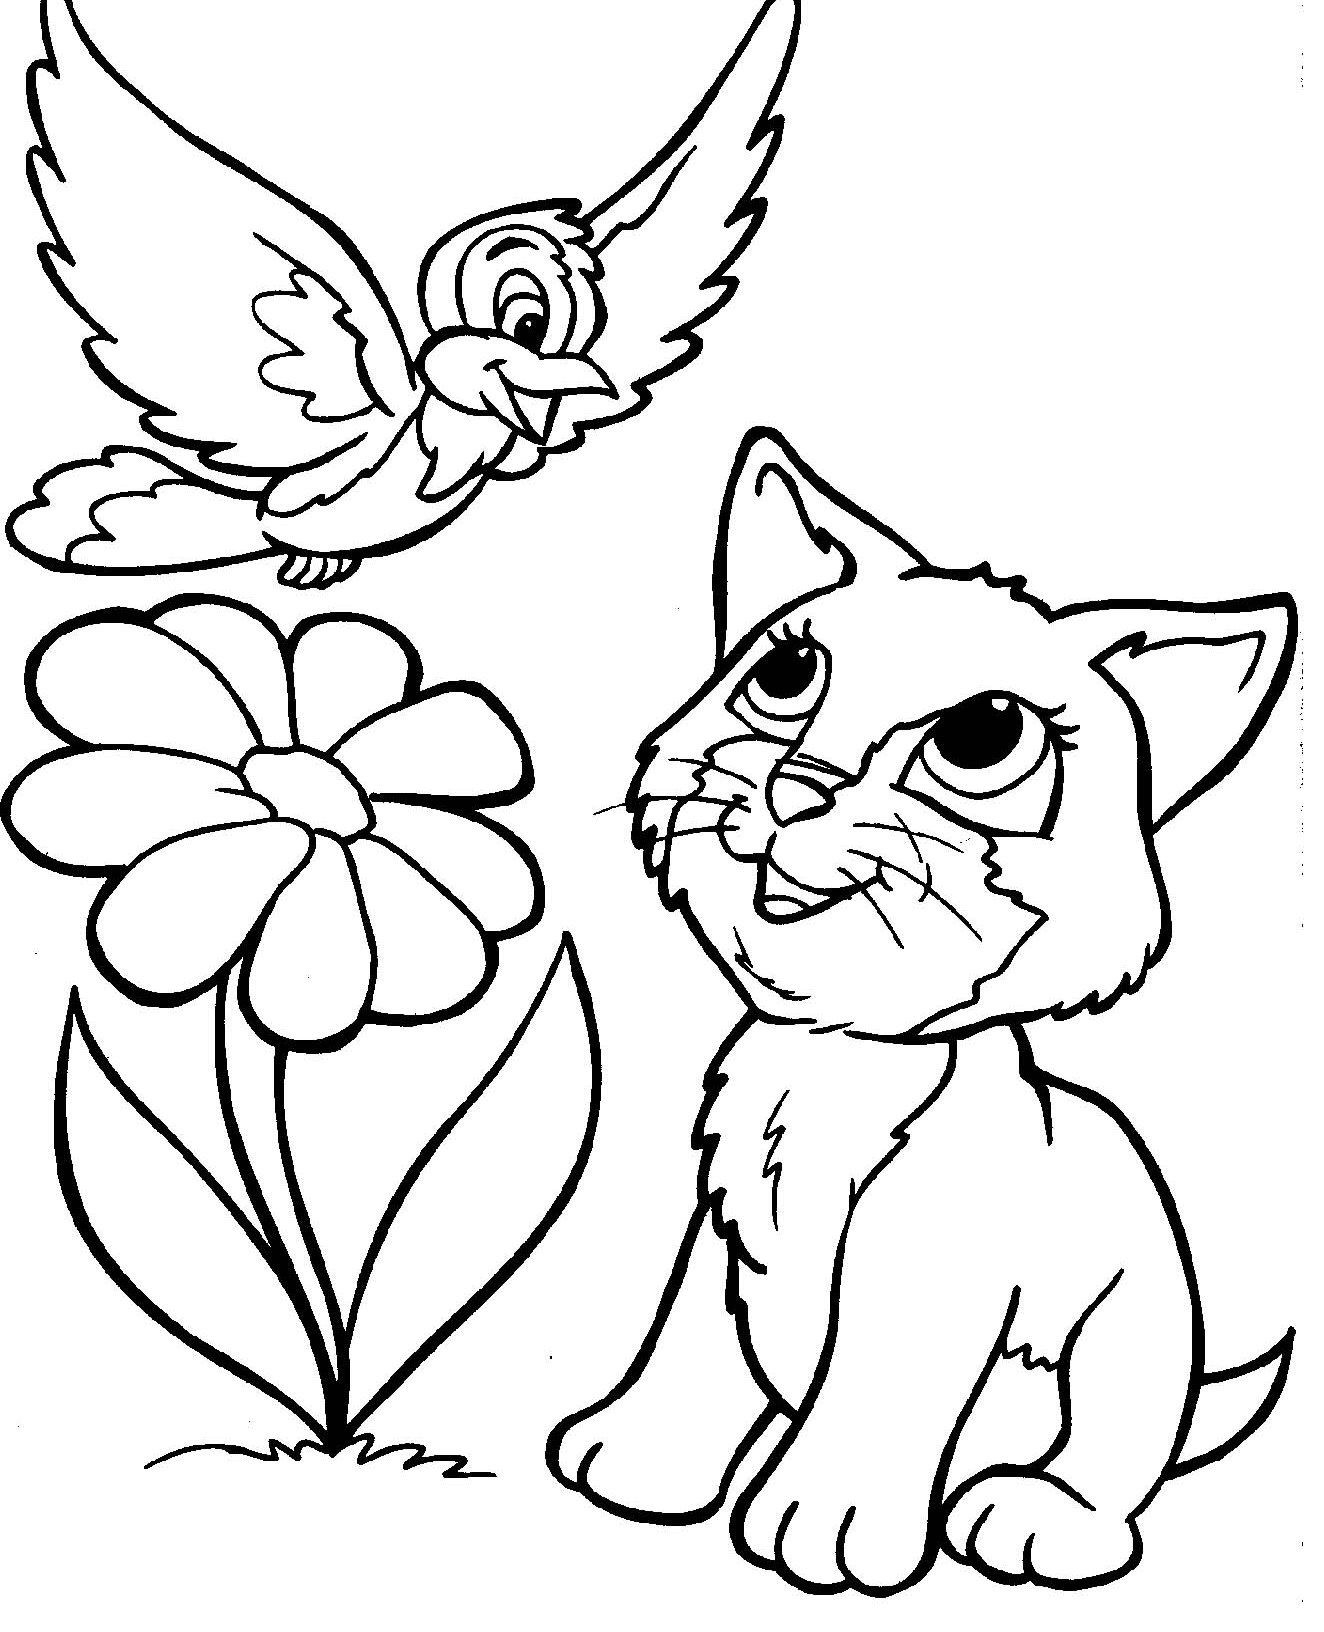 Cat Coloring Pages Download 6o - Save it to your computer